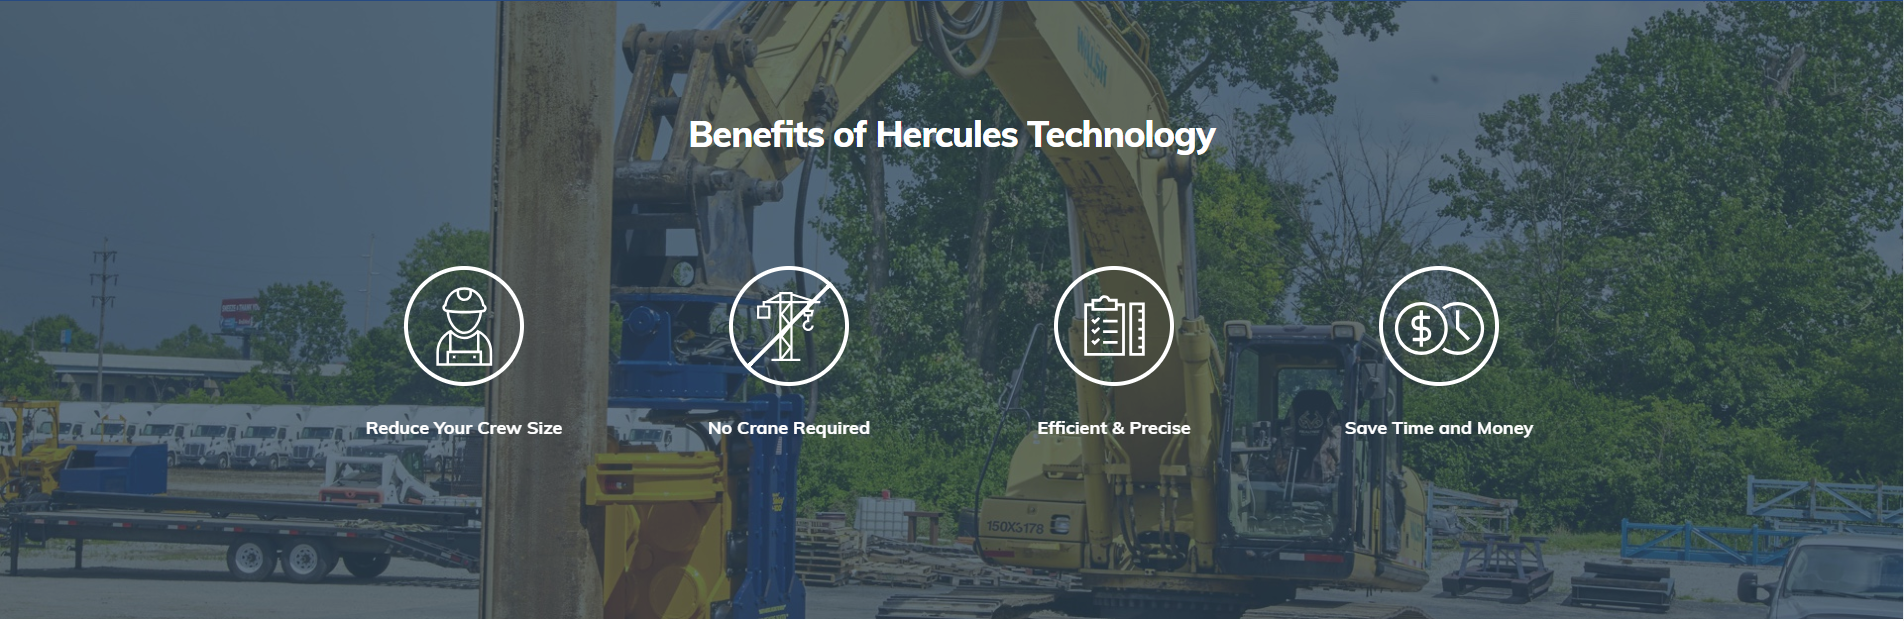 Benefits of Technology Call Out